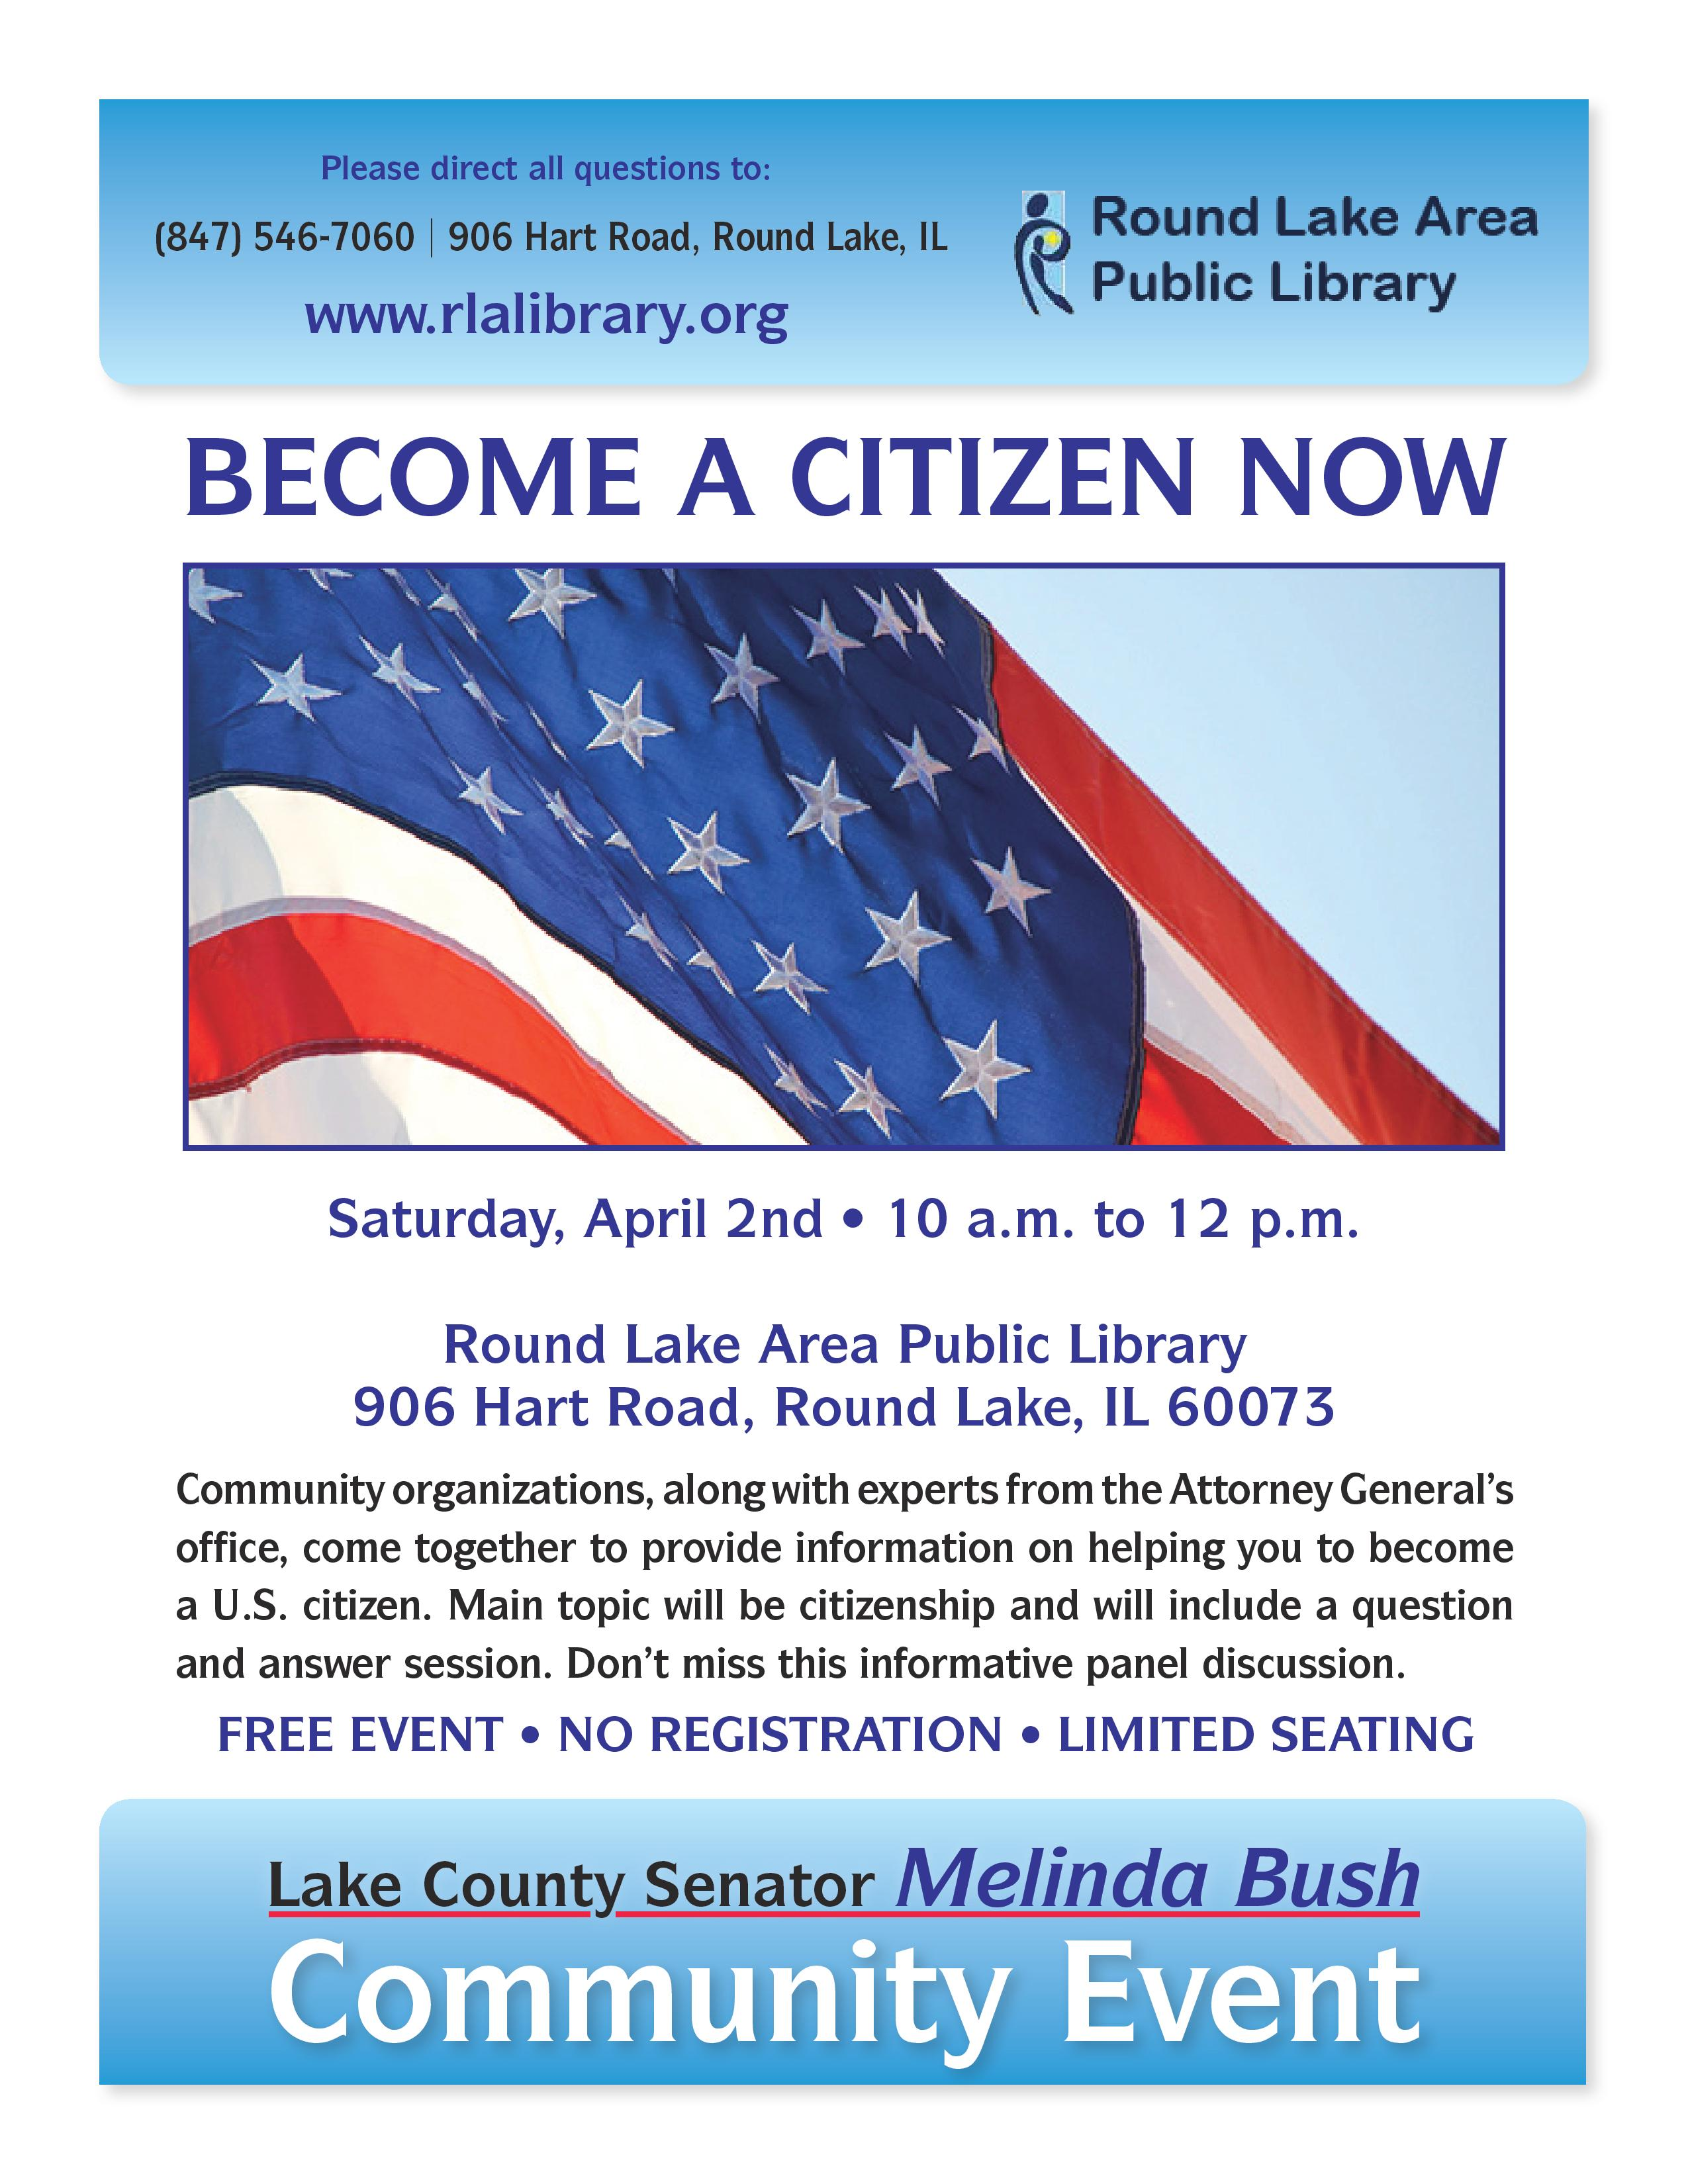 Round Lake Area Public Library Citizenship Forum Flyer 04 02 2016 page 001